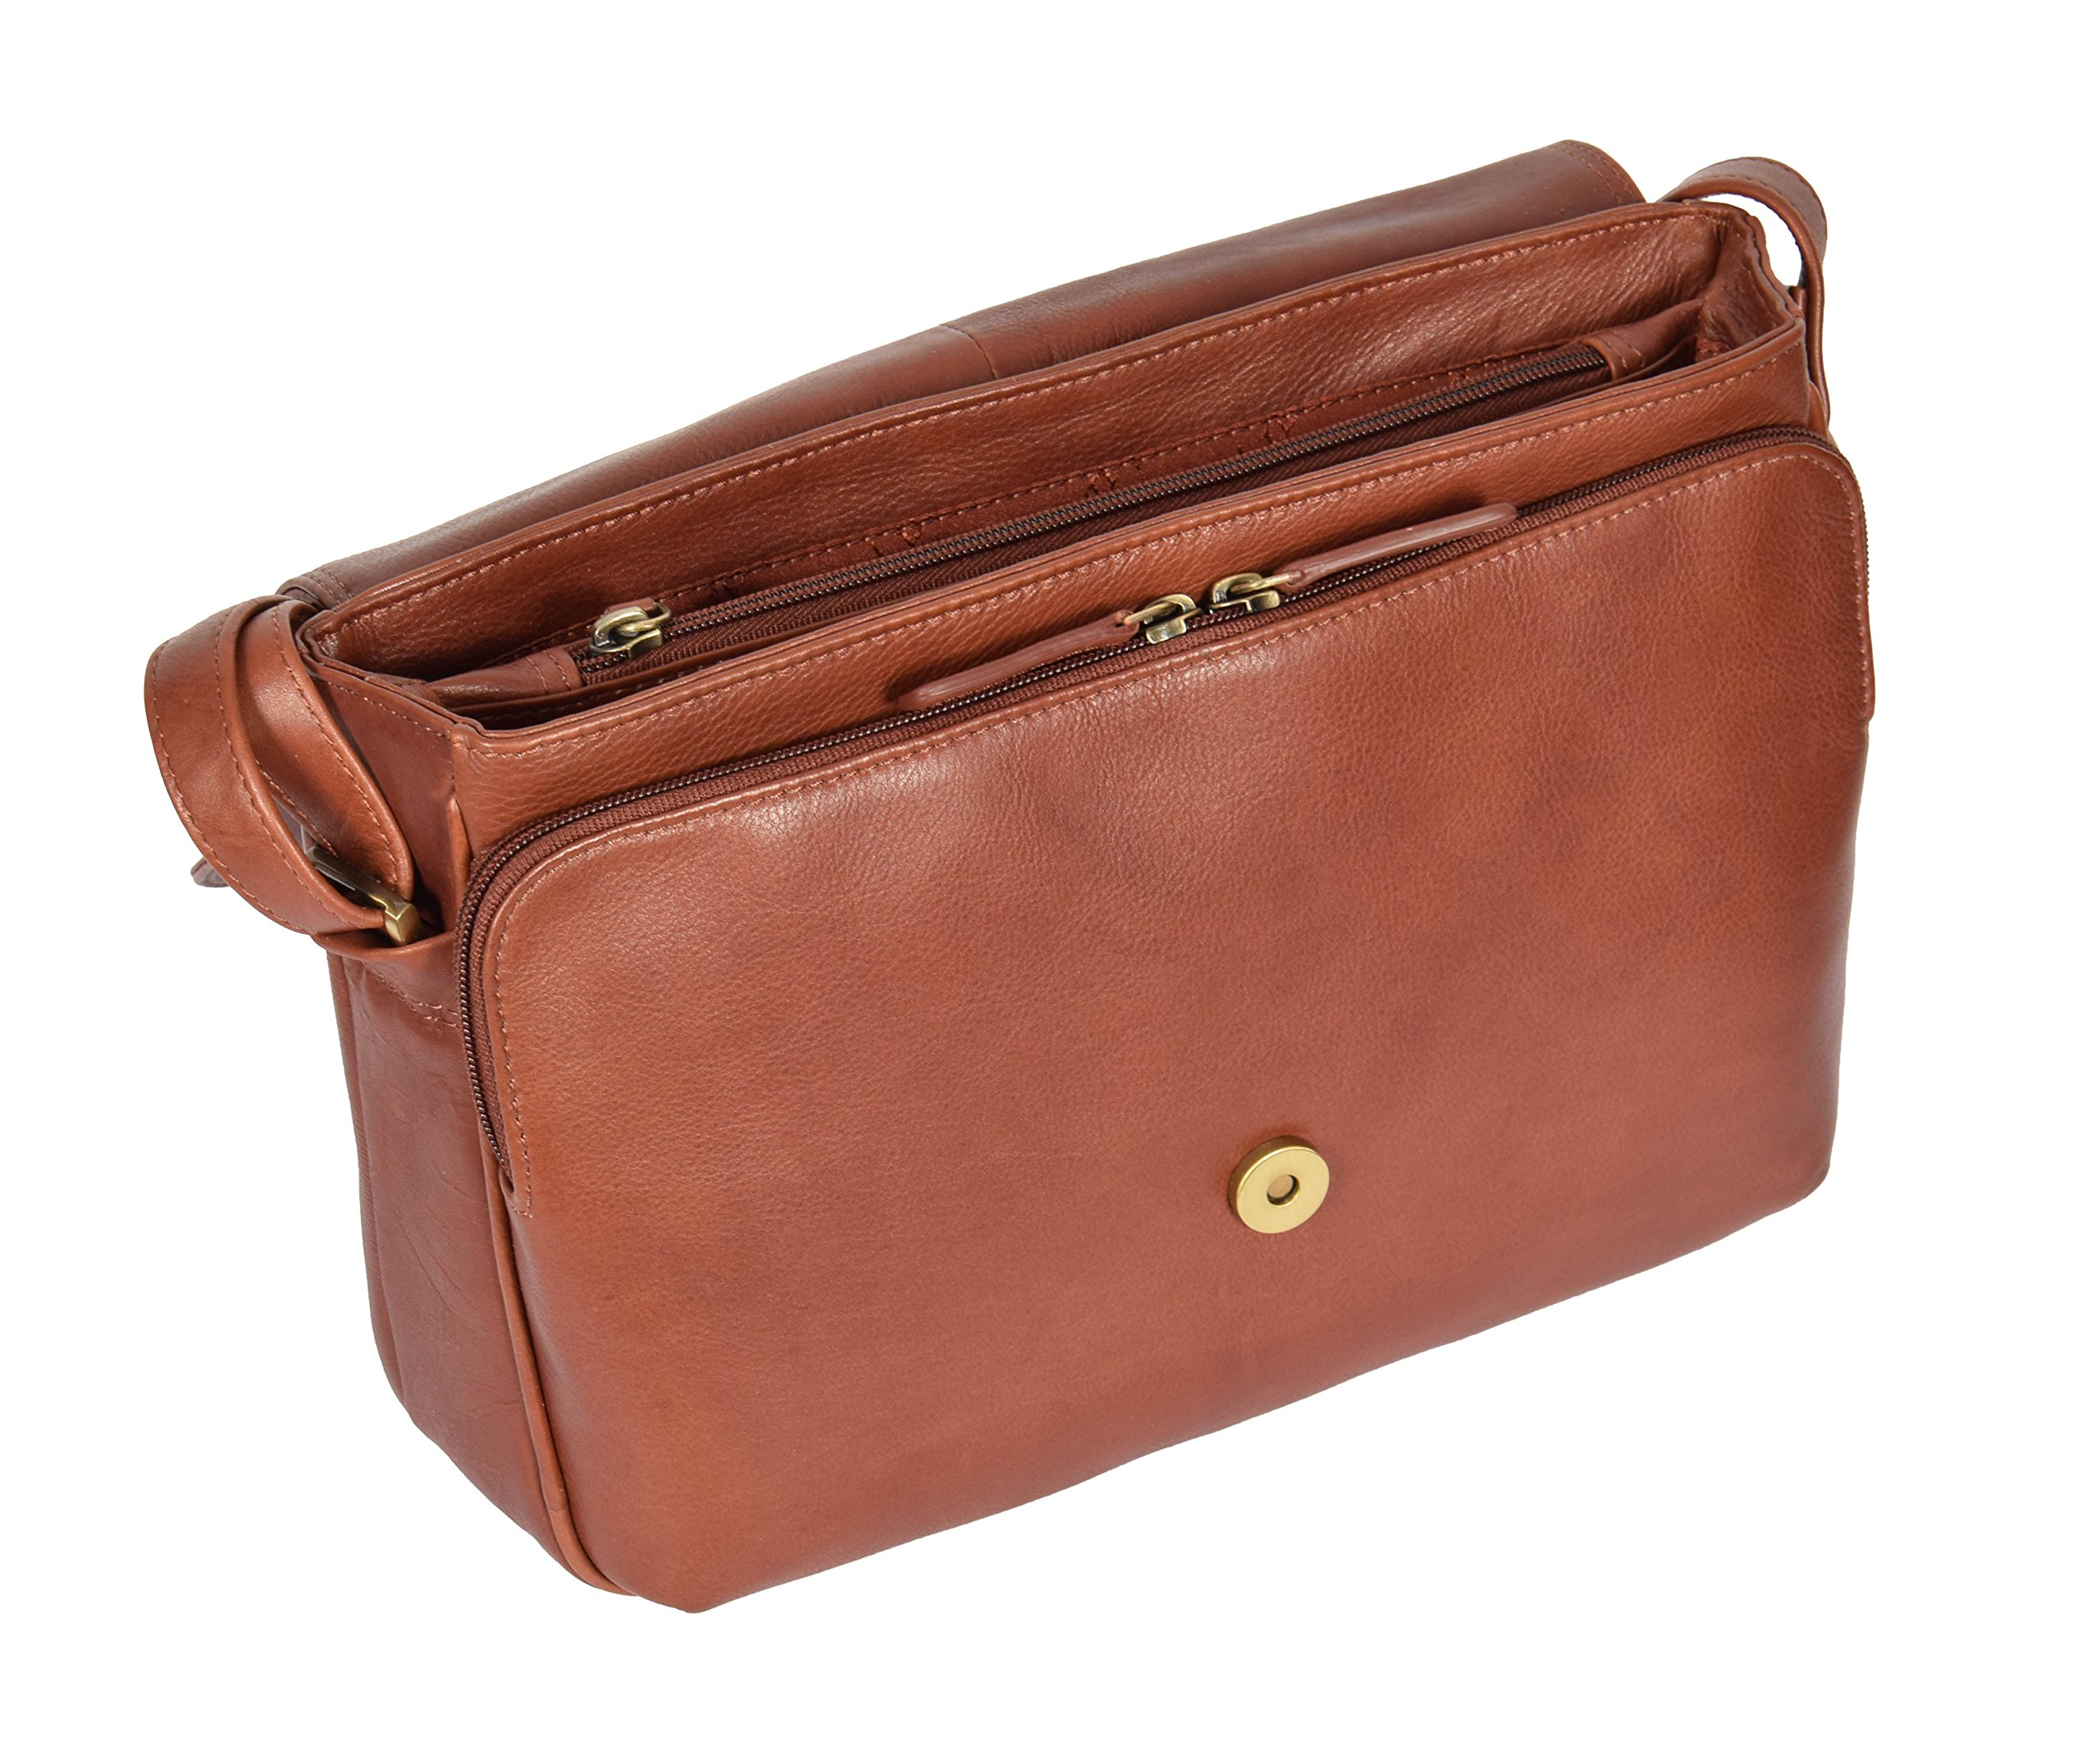 Womens Brown Shoulder Leather Organiser Cross Body Work Messenger Bag A190 by A1 FASHION GOODS (Image #5)